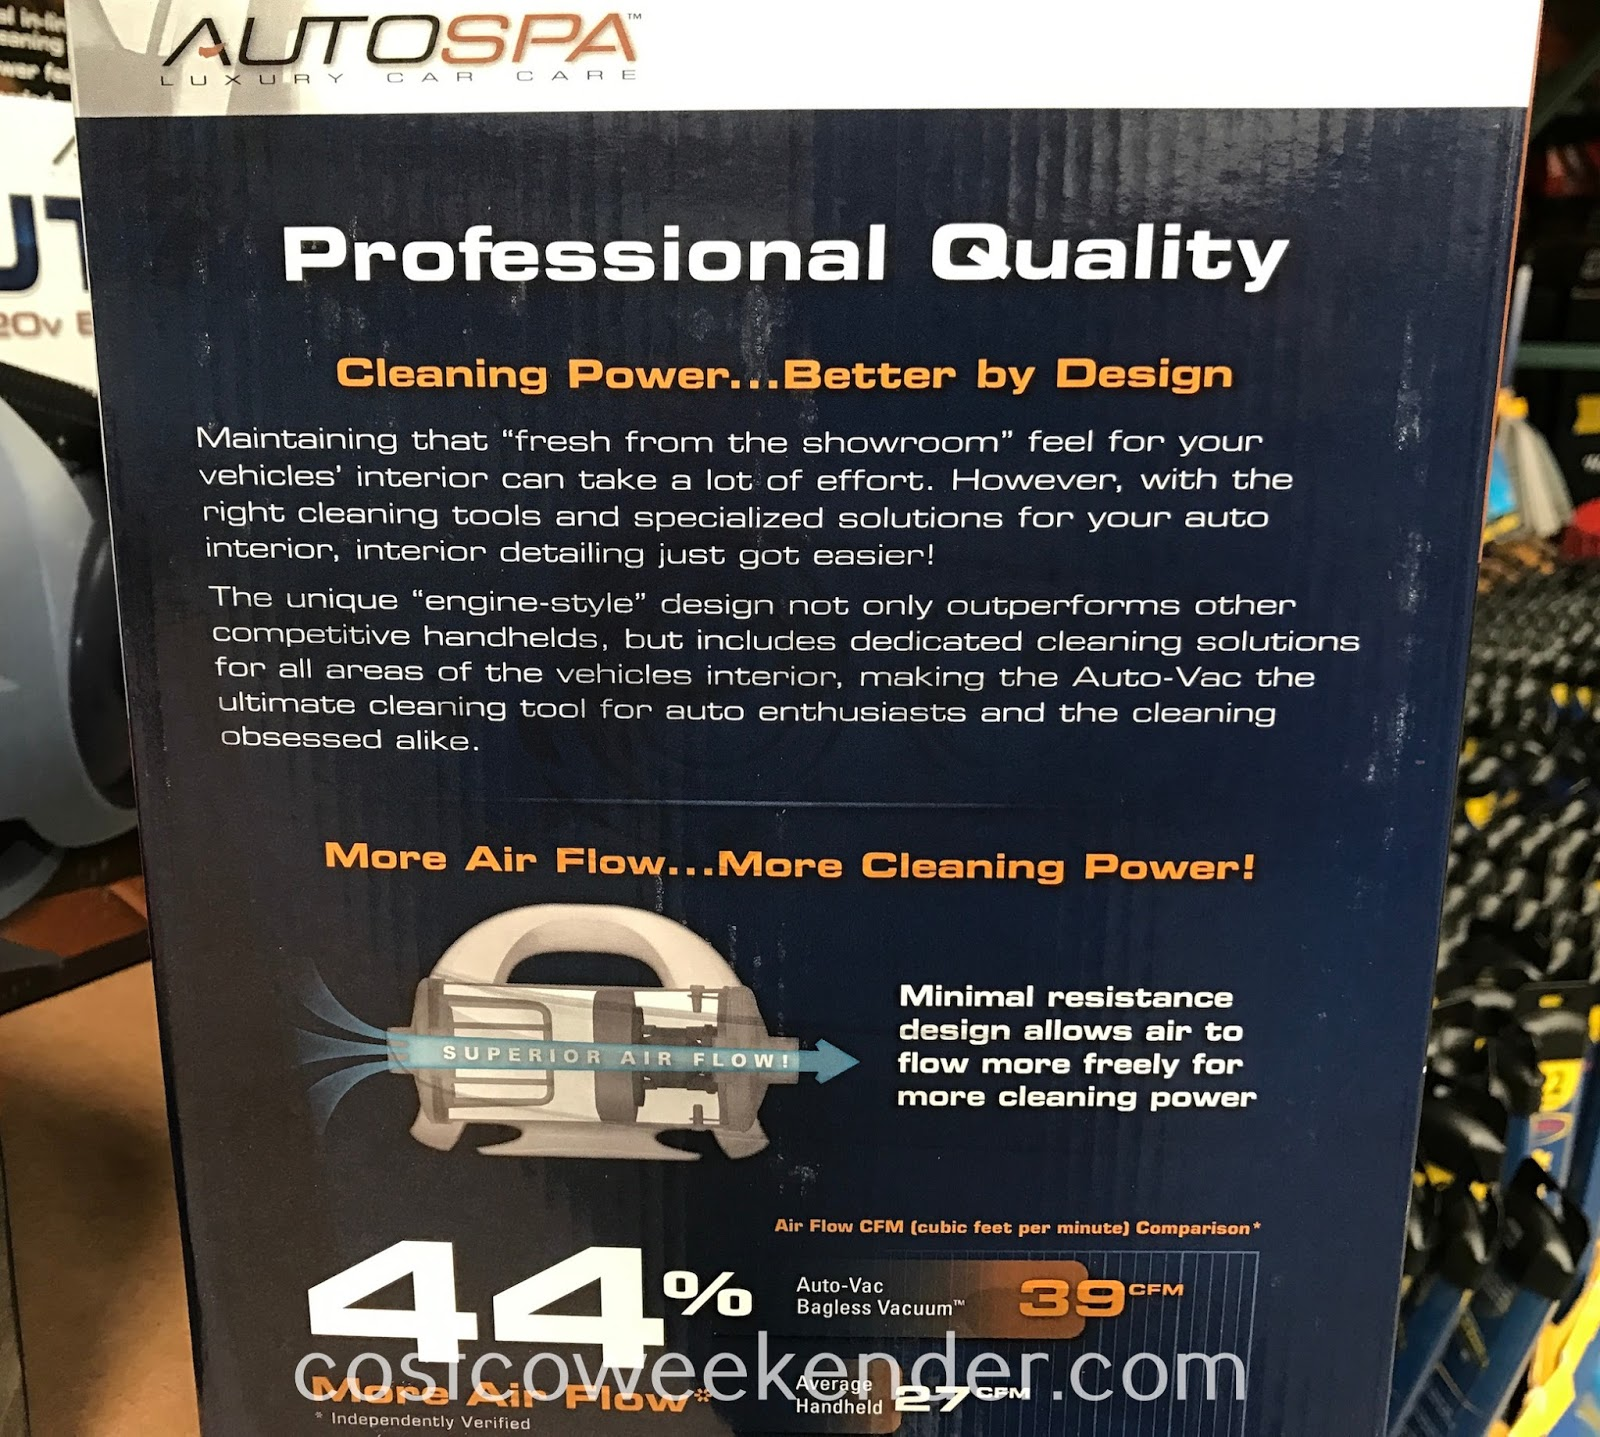 Autospa Auto-Vac 120v Bagless Vacuum: the right tool for that fresh-from-the-showroom look for your car